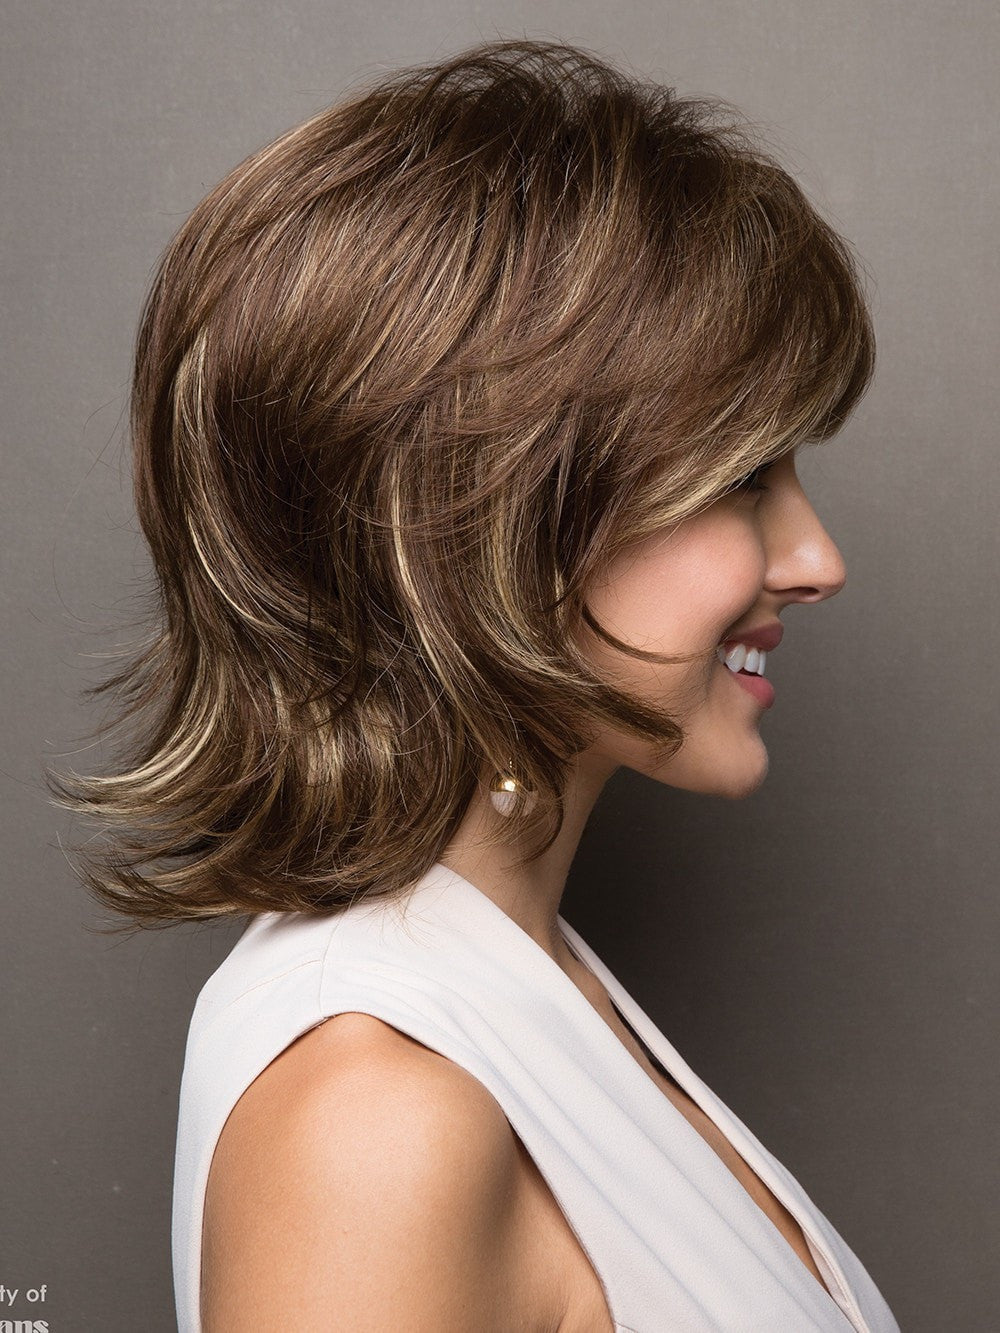 Short, layered cut flips at the collar and has soft, textured edges